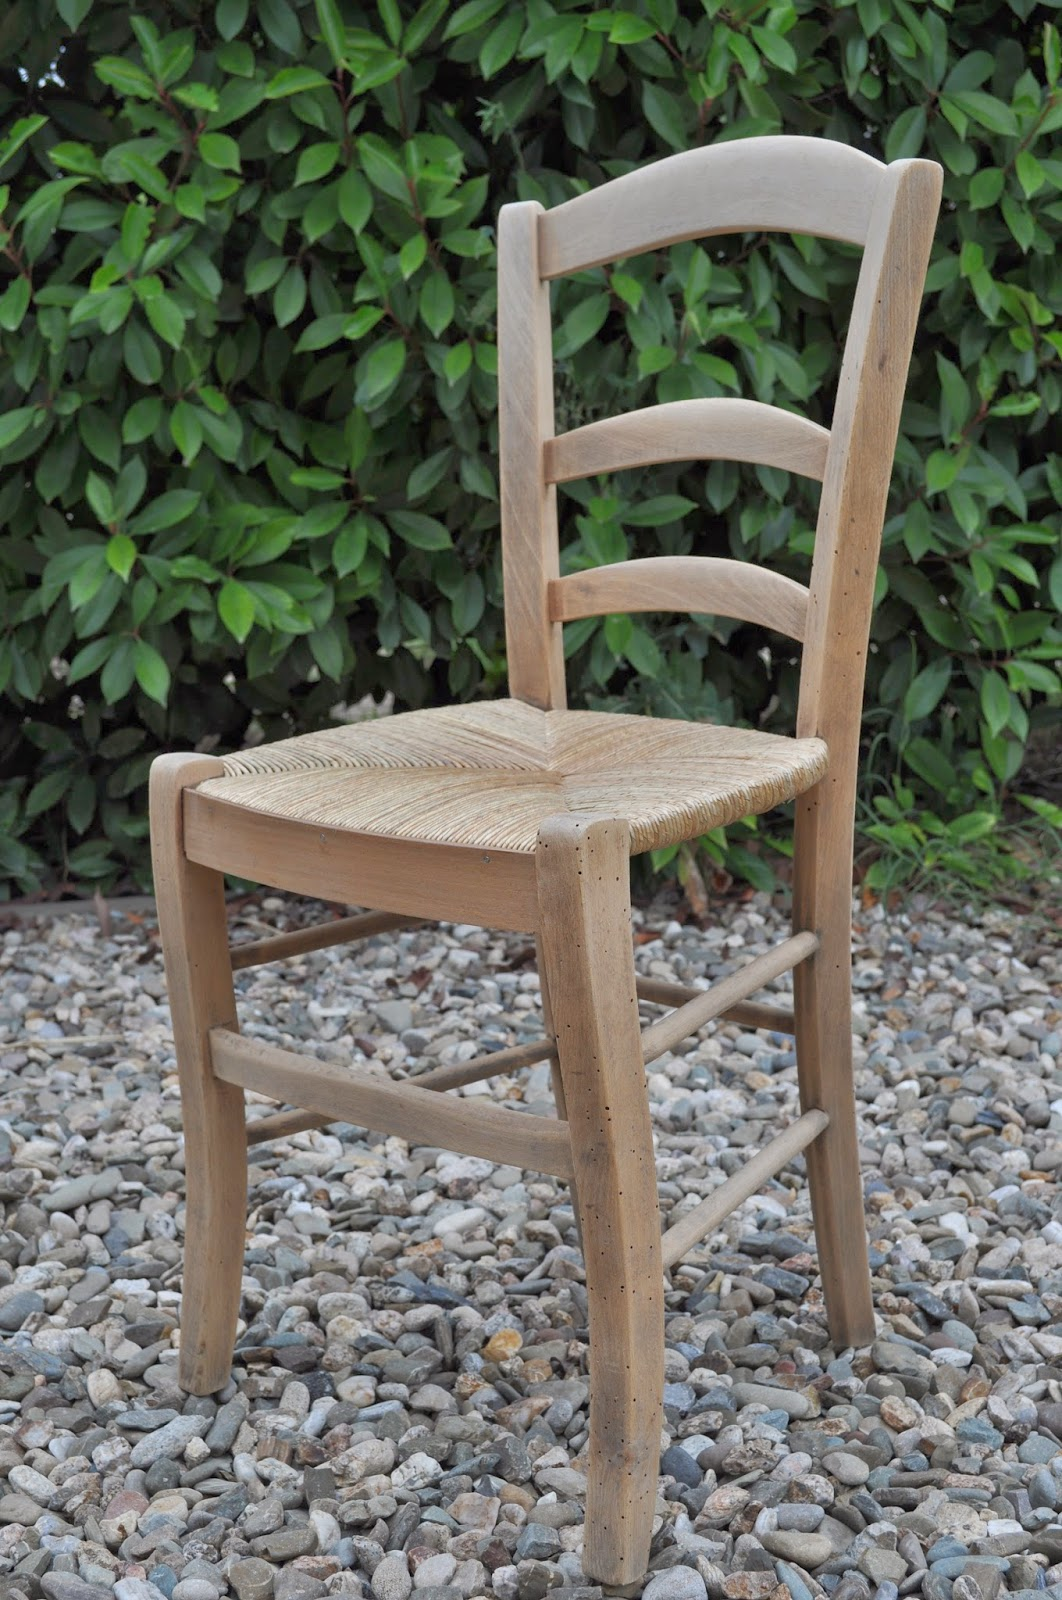 Bois et patines nathalie madrenes chaise paysanne patinee for Chaise paysanne blanche